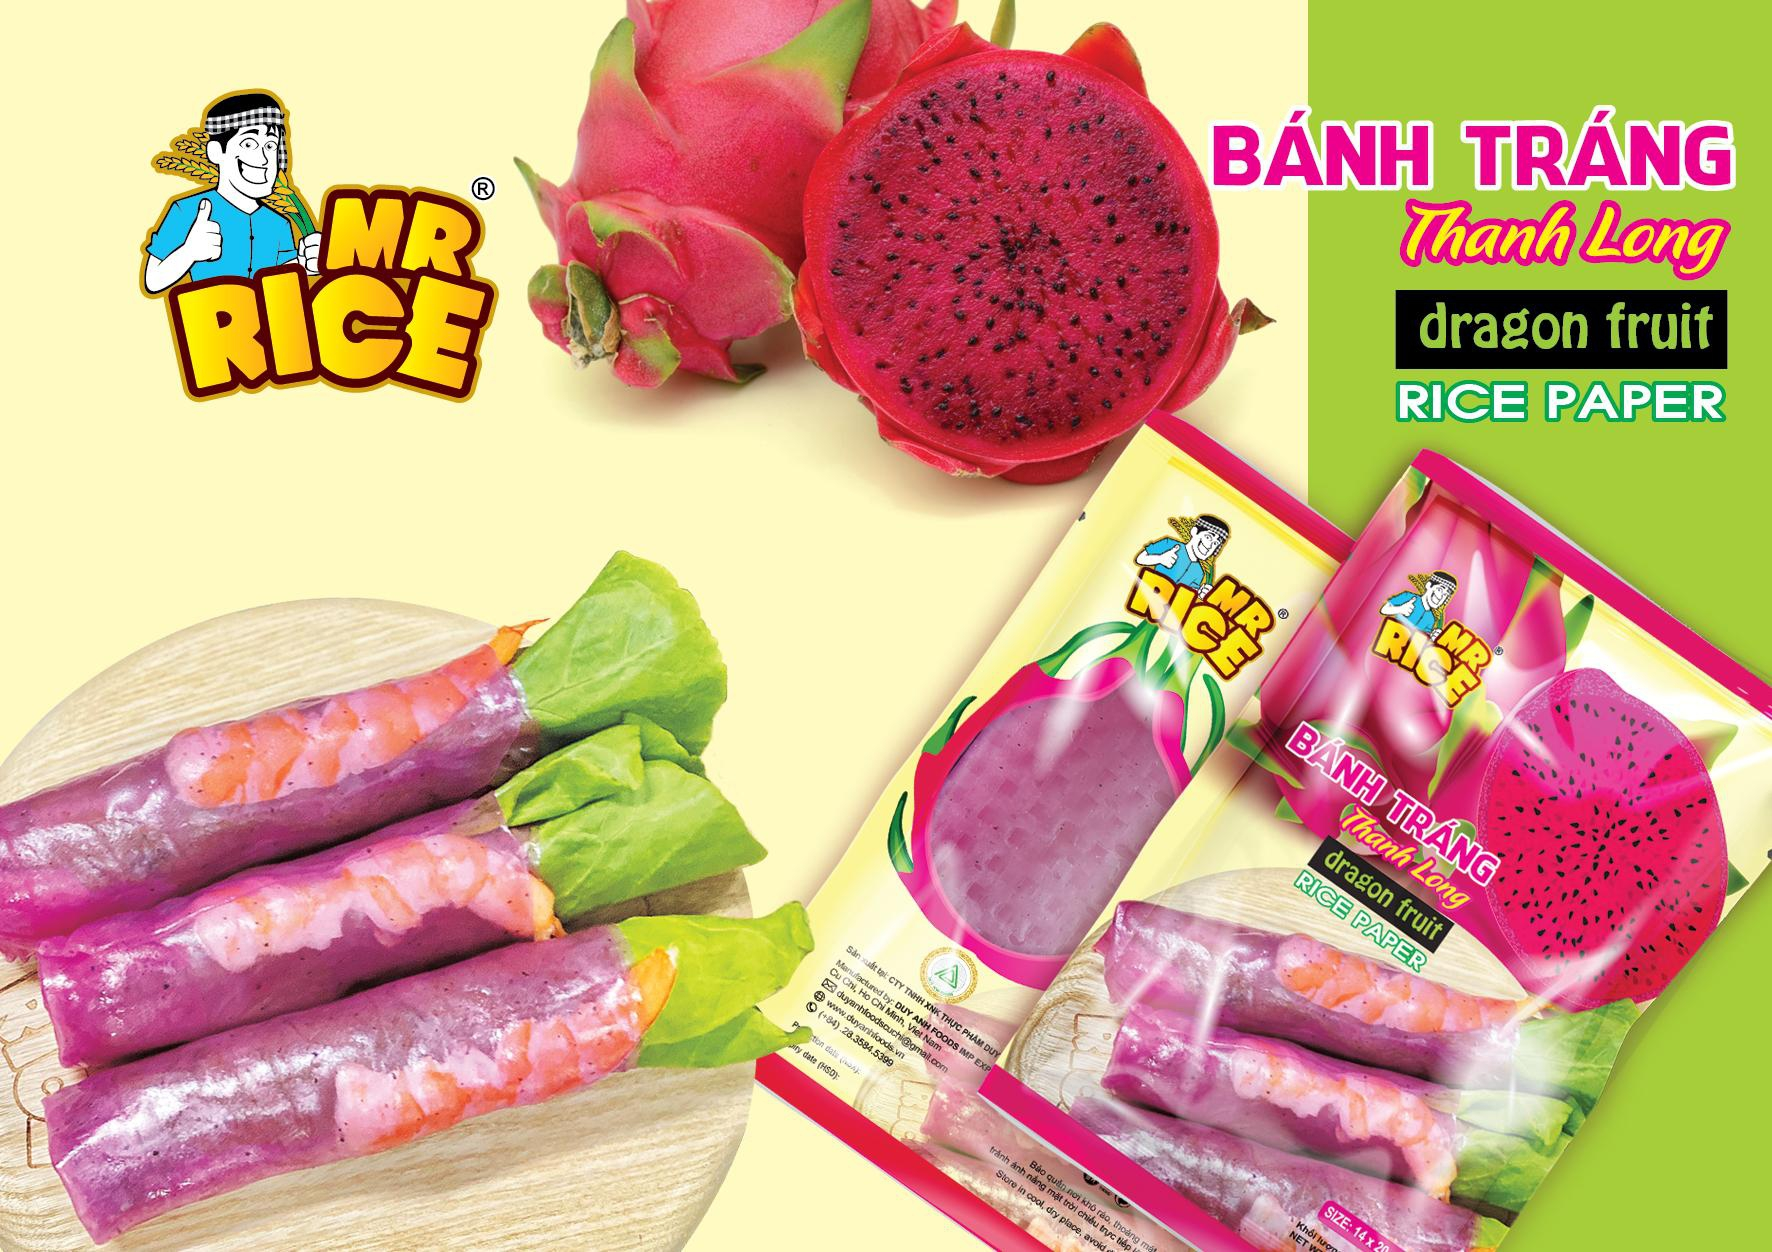 Dragon Fruit Rice Paper - Mr Rice - A Special Product of Duy Anh Foods